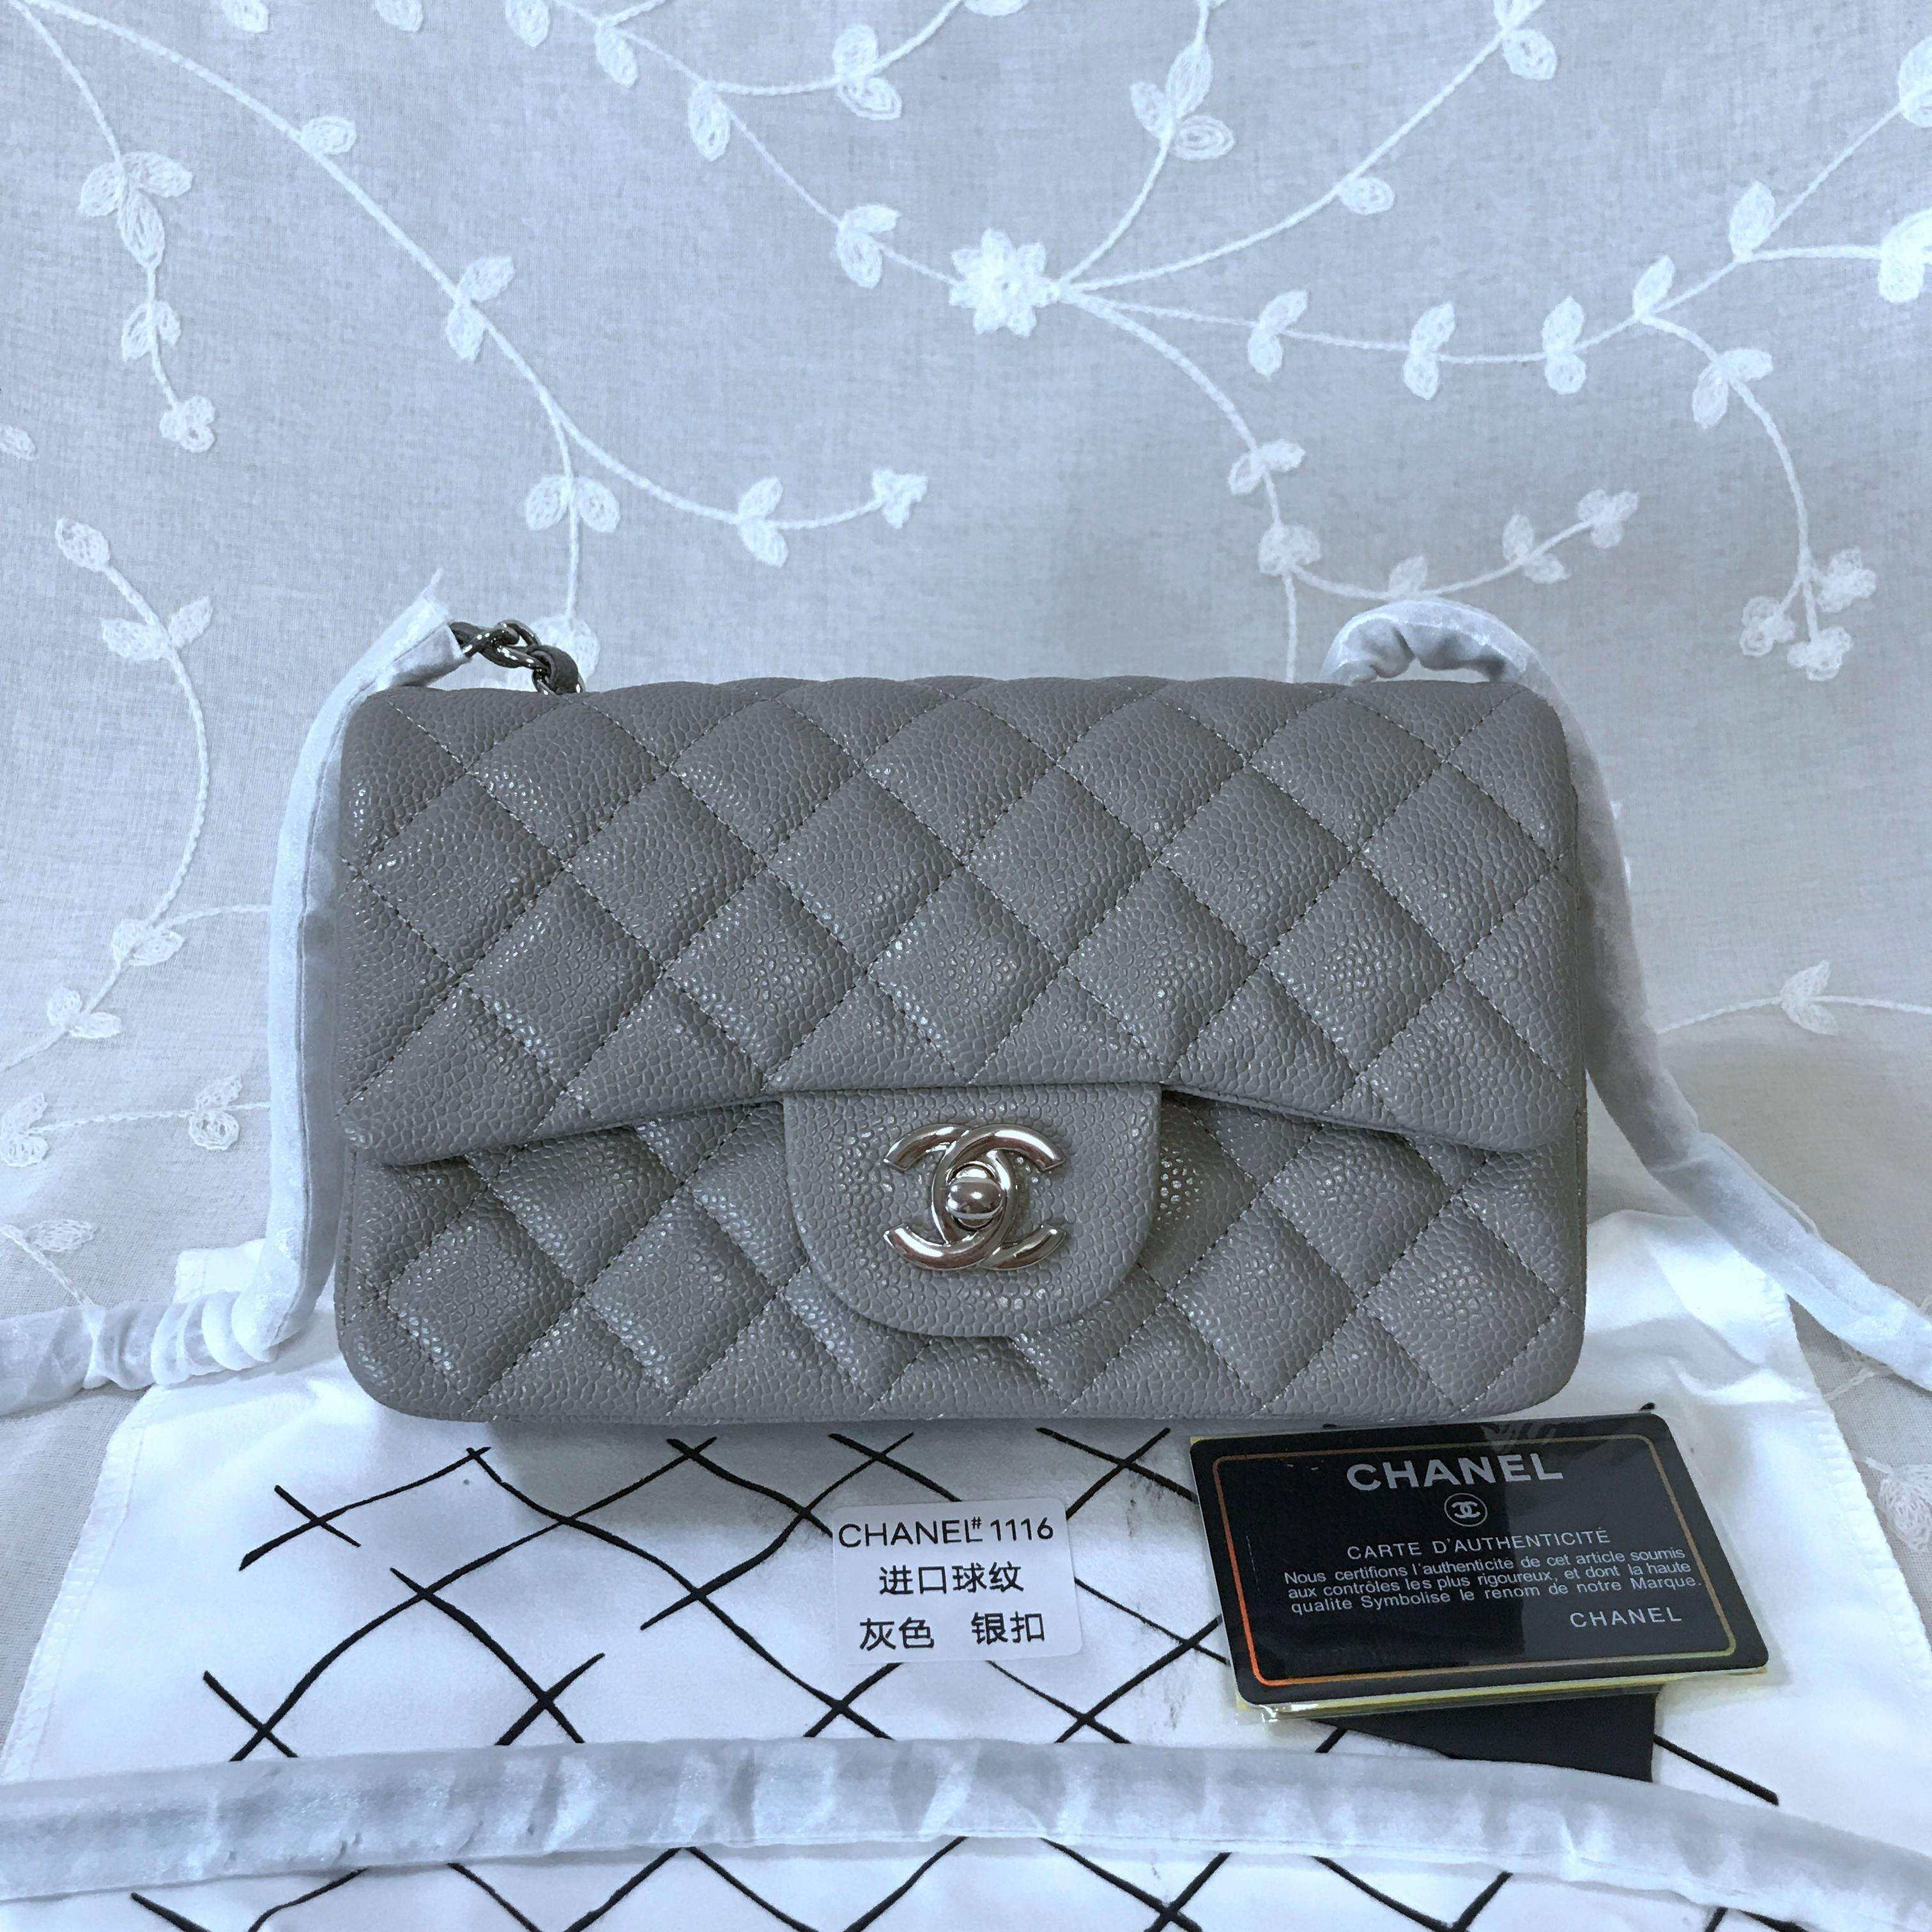 CHANEL SMALL FLAP BAG AS1116